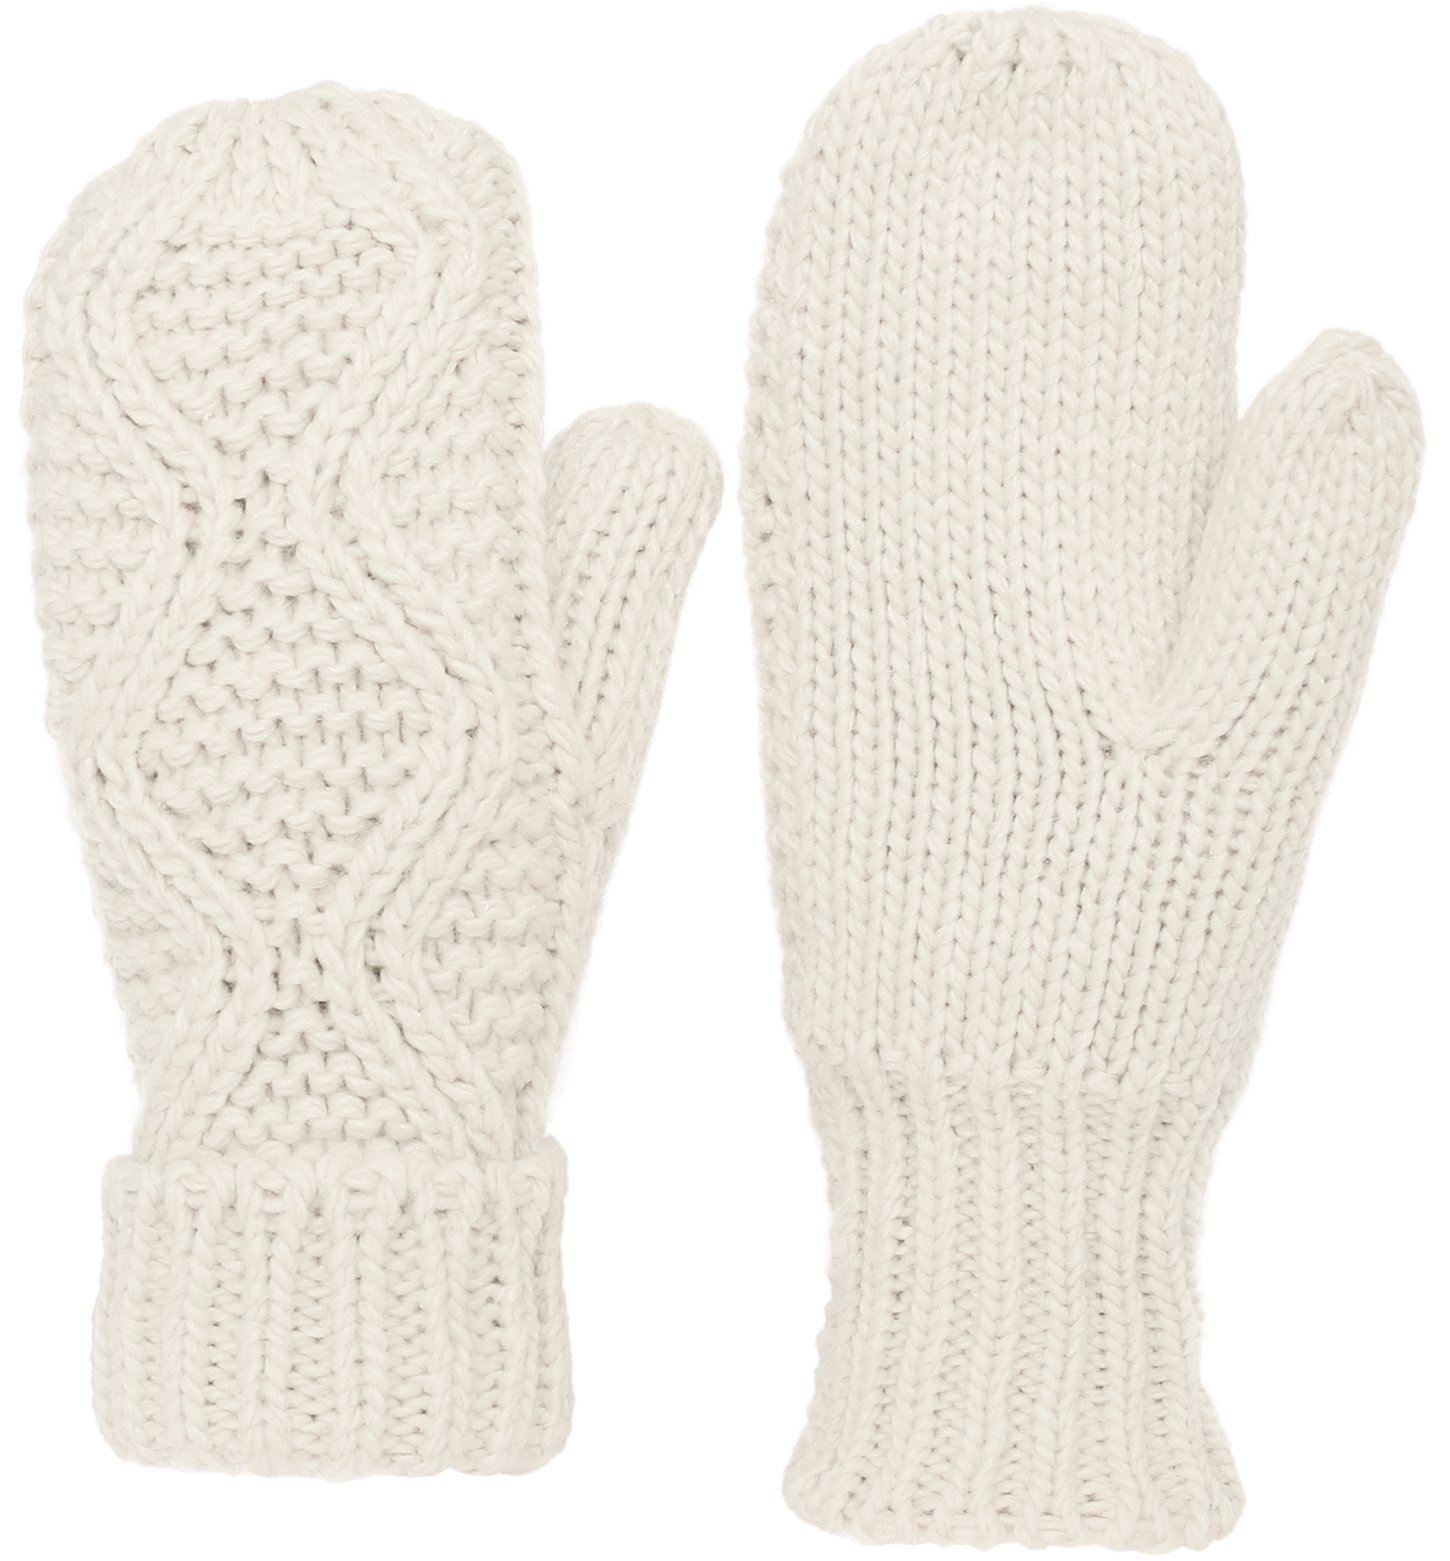 KMystic Classic Cuffed Thick Winter Knit Mittens (White)